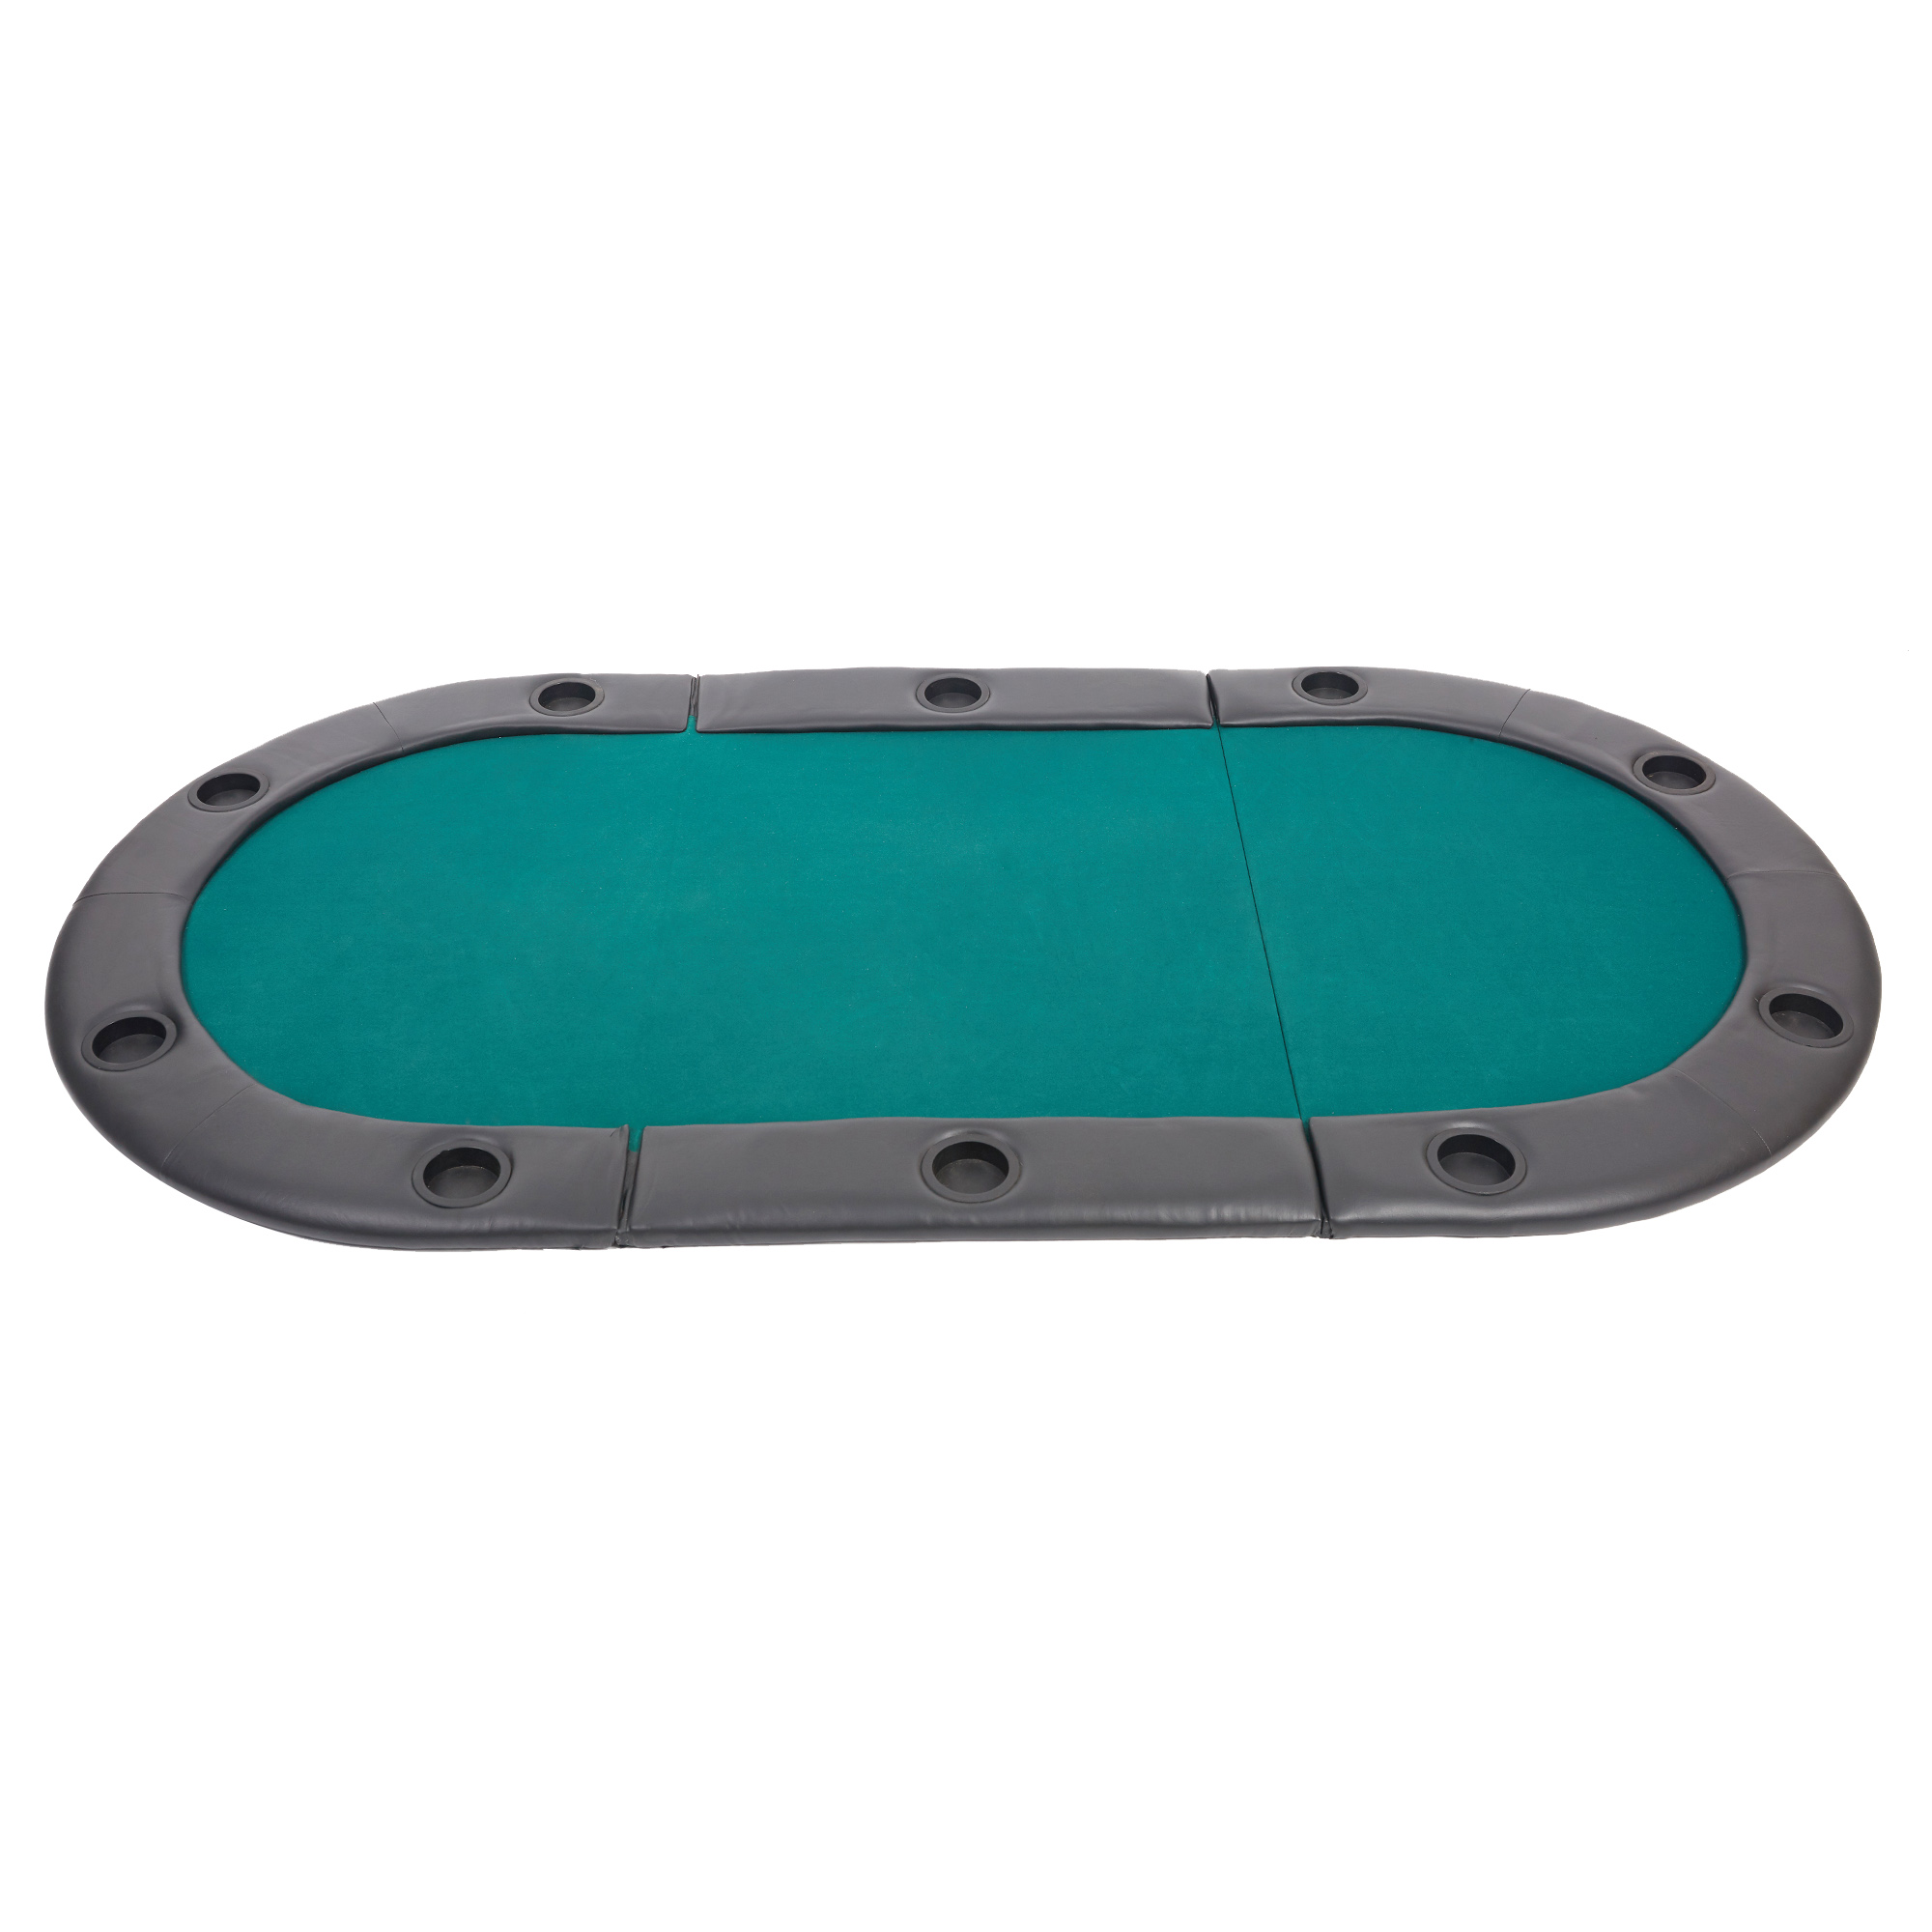 KARMAS PRODUCT 82 Inch 3 Folding Poker Table Top 10 Players Casino  Blackjack Game Oval Padded Poker Table Layout With Cup Holders, Green    Walmart.com